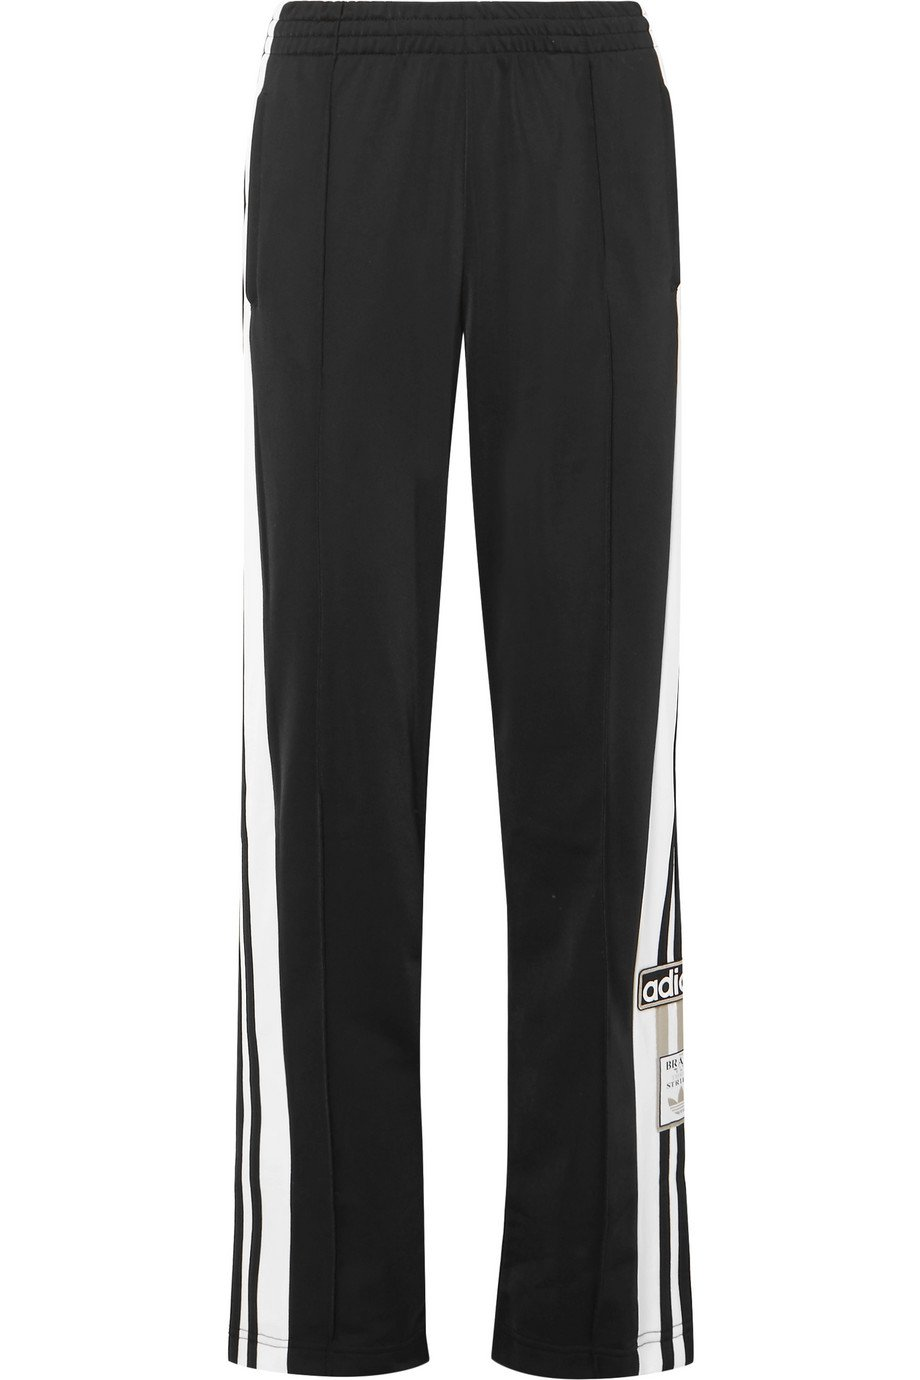 adidas Originals | Striped satin-jersey track pants | NET-A-PORTER.COM